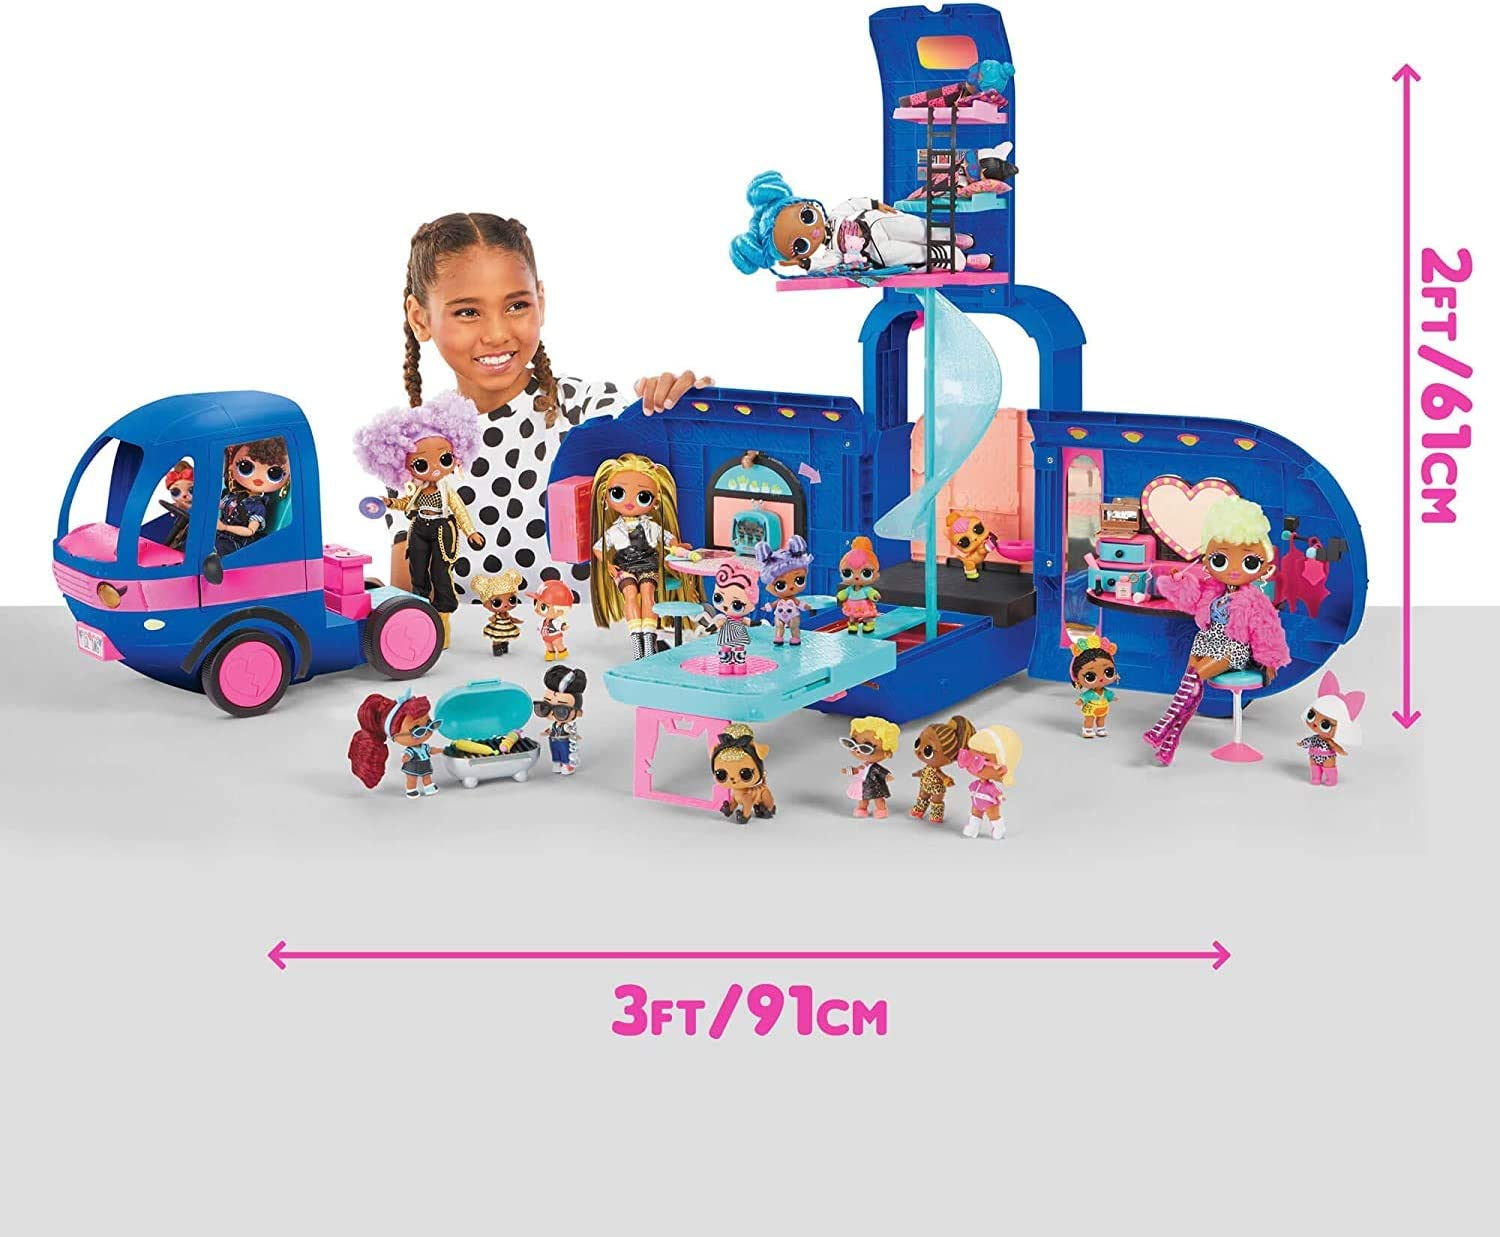 Surprises Car Slide Fun Gift Set LOL Surprise Doll Glamper Fashion Camper 55